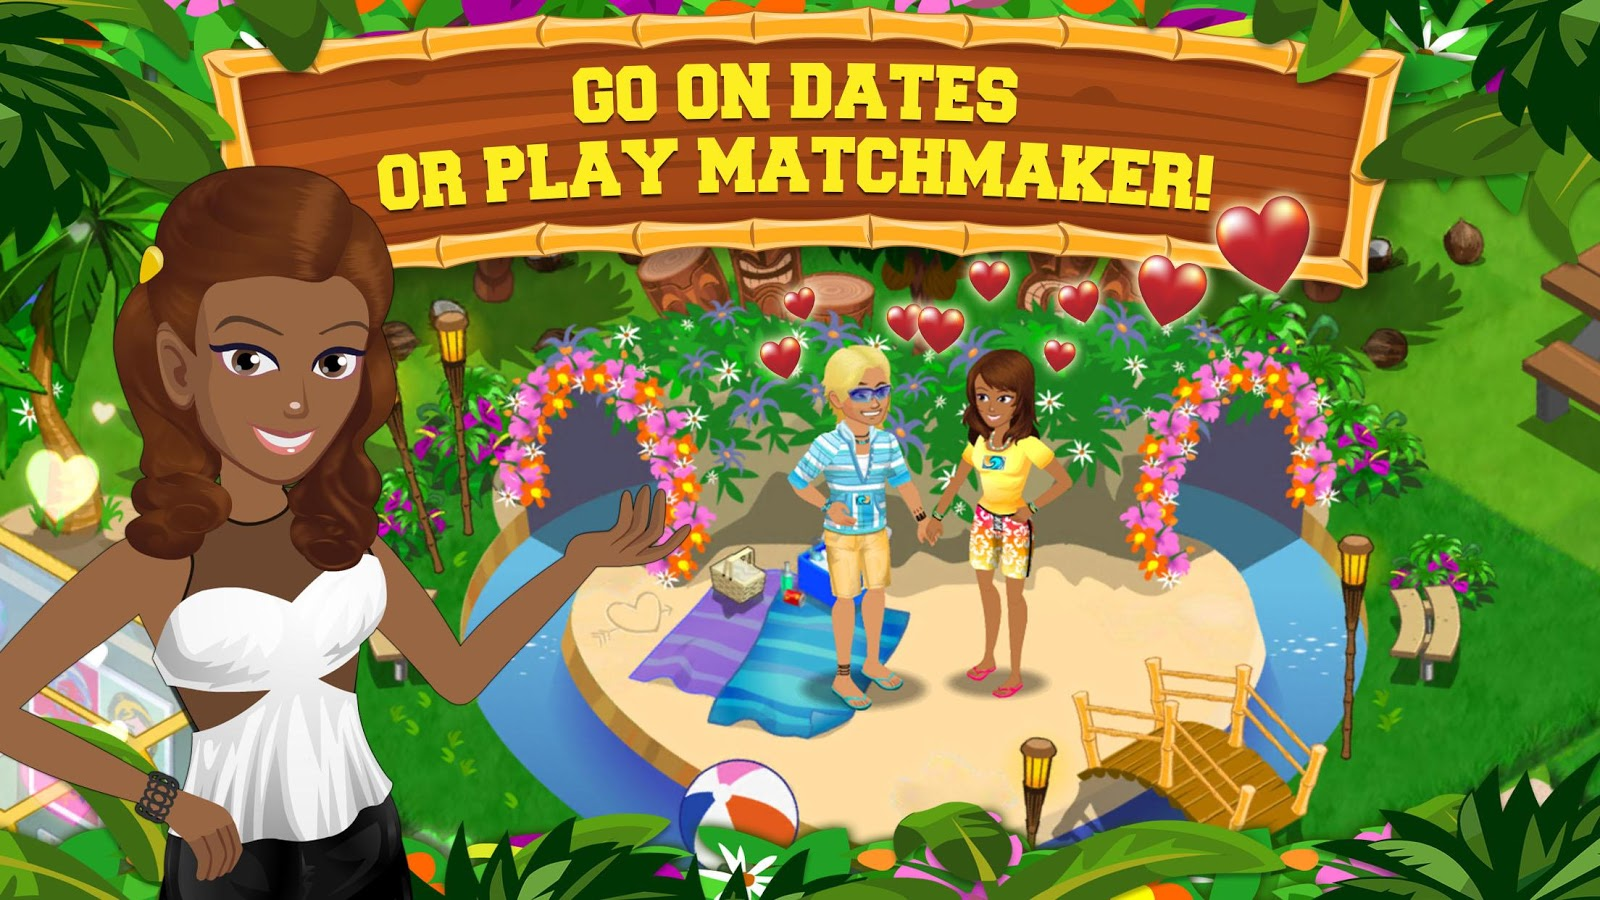 A femme looking person and a gender ambiguous person hold hands on a sandy island near two tunnels in a park. Femme looking person gestures towards text. Text reads 'Go on dates, or play matchmaker'.